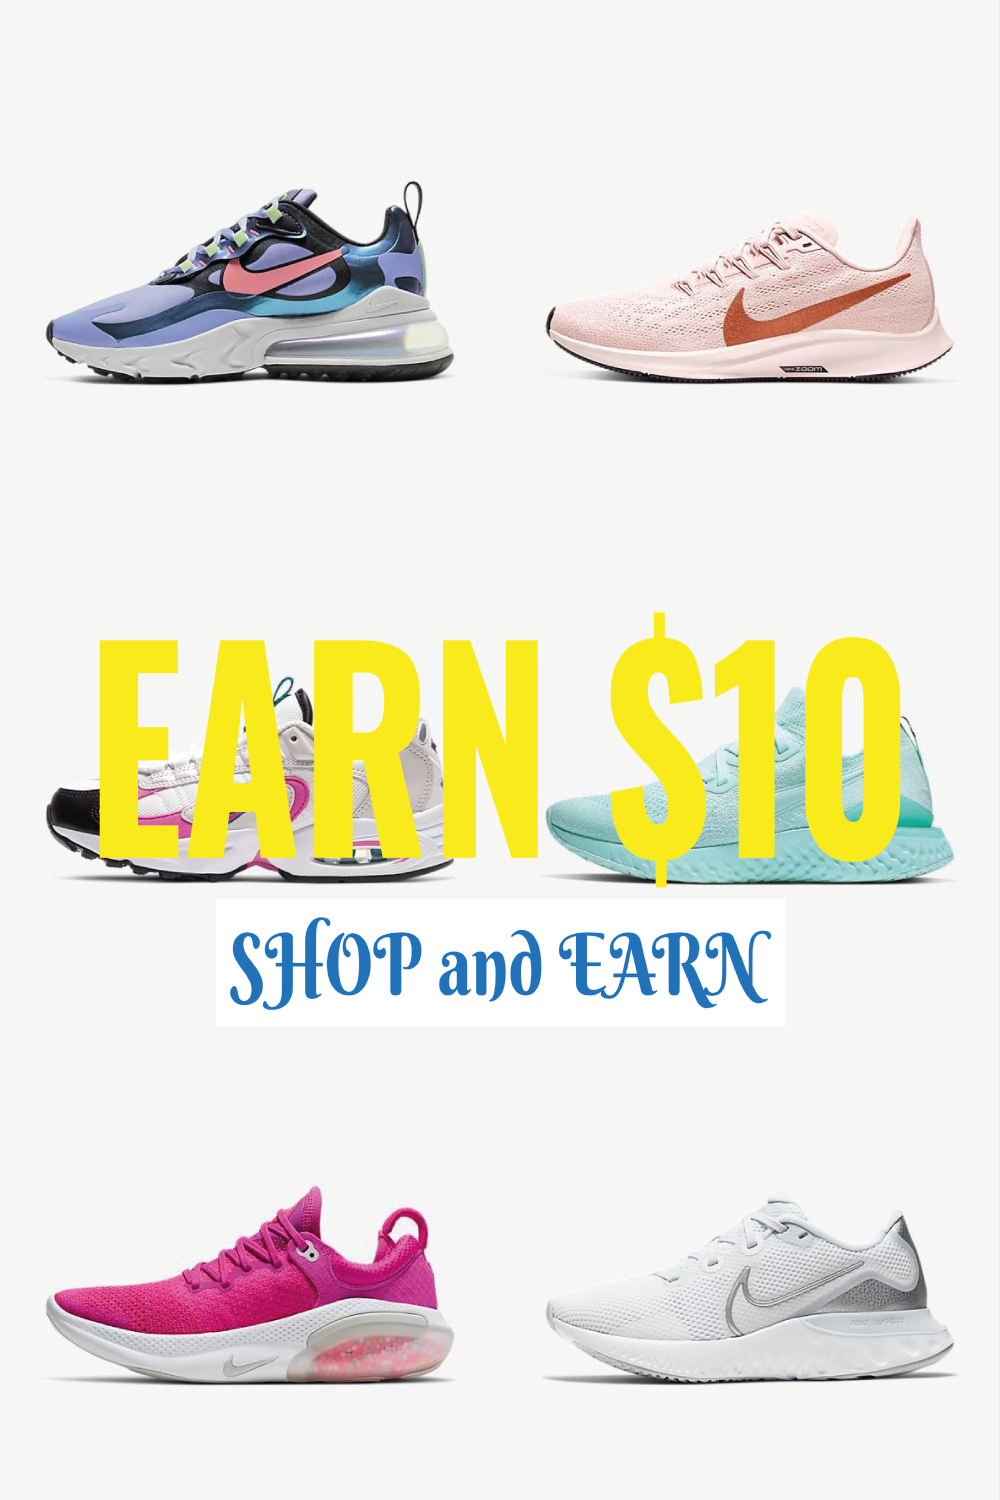 Who knew you could earn by shopping? Follow the link now to get rewarded! #cashbackapps #cashbackappsmakemoney #cashbackoffer #cashbackads #cashbackpromotion #promocodes #codesforfreestuff #promocodescoupon #promogirls #nikeshoes #trendyshoes #fashionshoes #cuteshoes #sneakers #shoesforwomen